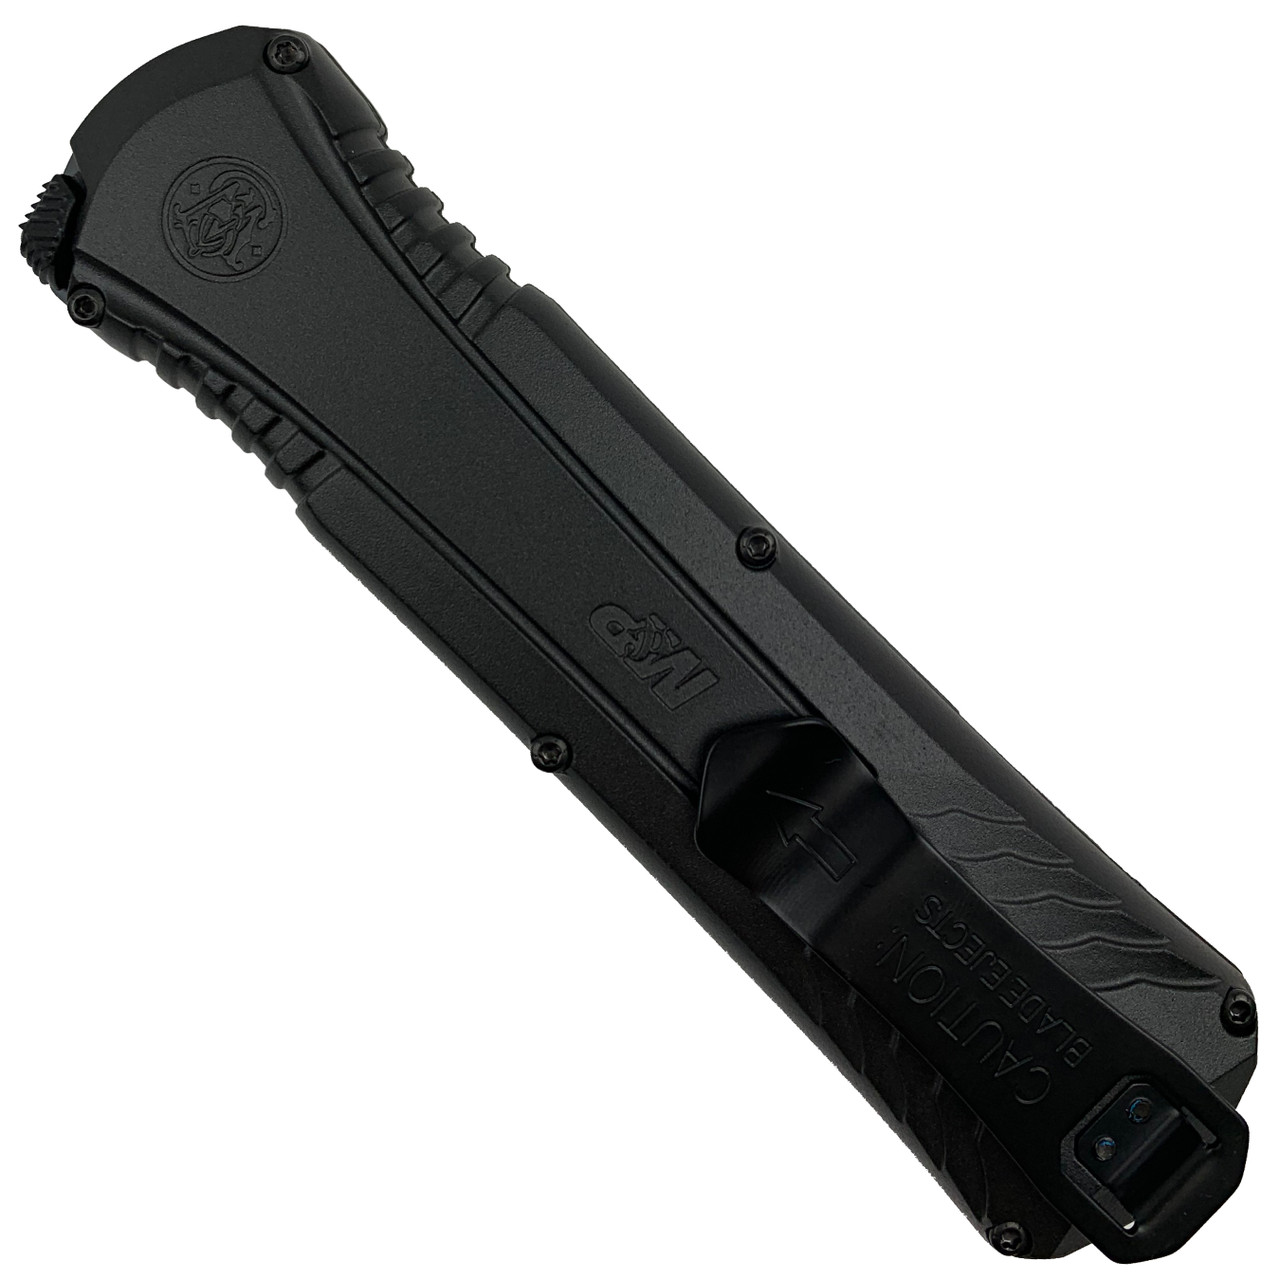 Smith & Wesson BlackOut OTF Spring Assist Knife, Black Blade REAR VIEW